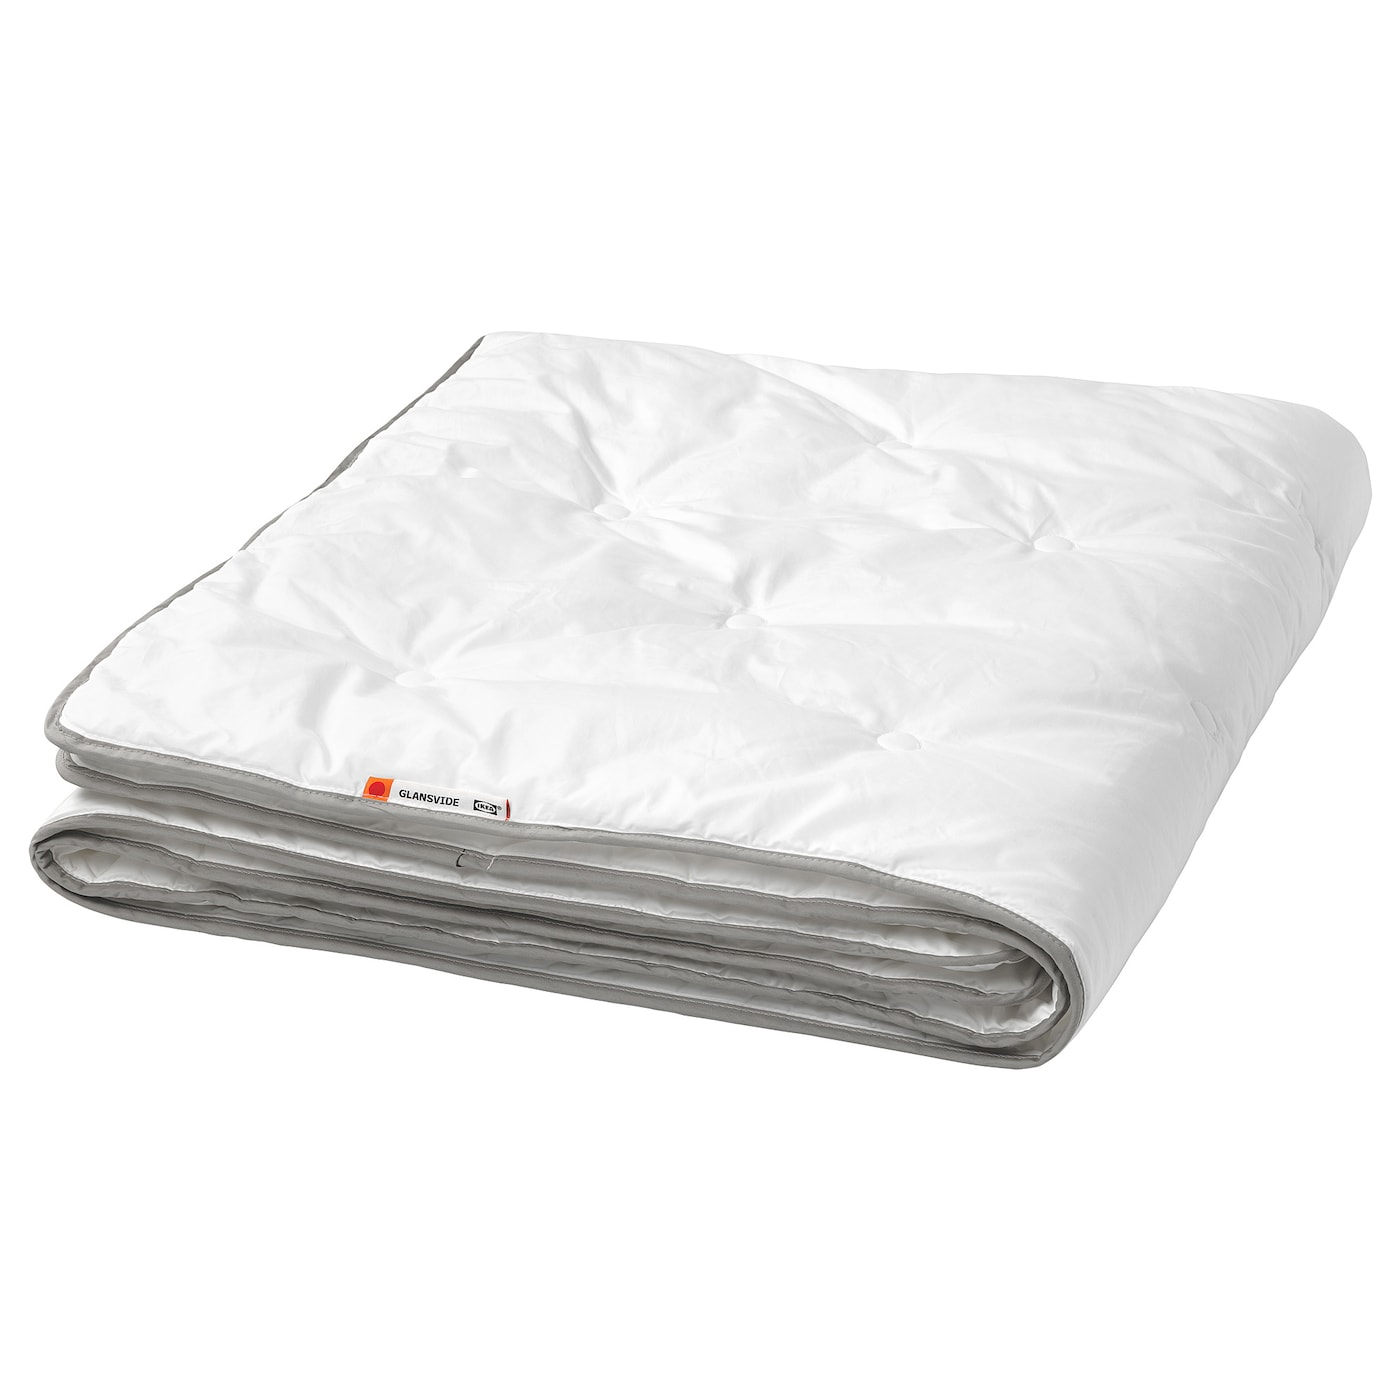 IKEA GLANSVIDE duvet, 7.5 TOG A good choice if you often feel cold while sleeping.